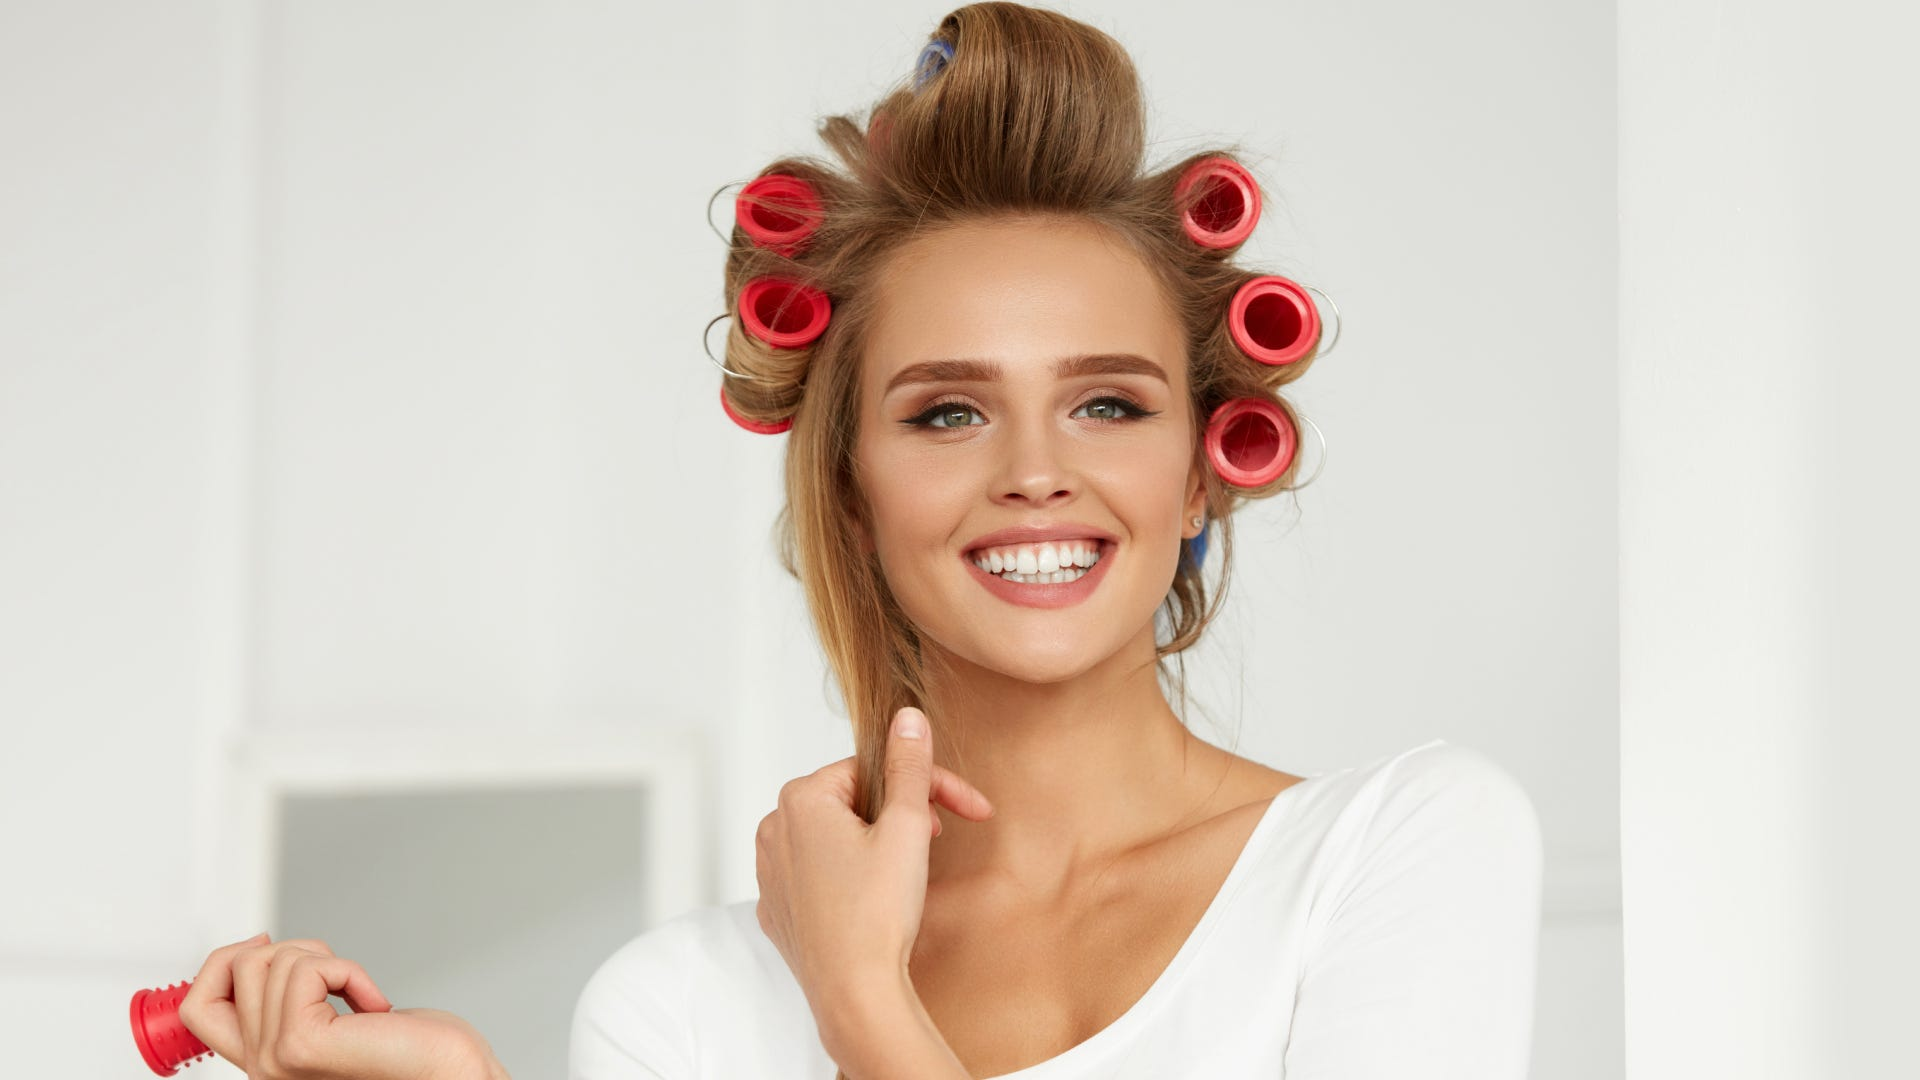 A smiling girl wears pink hair rollers on her head.